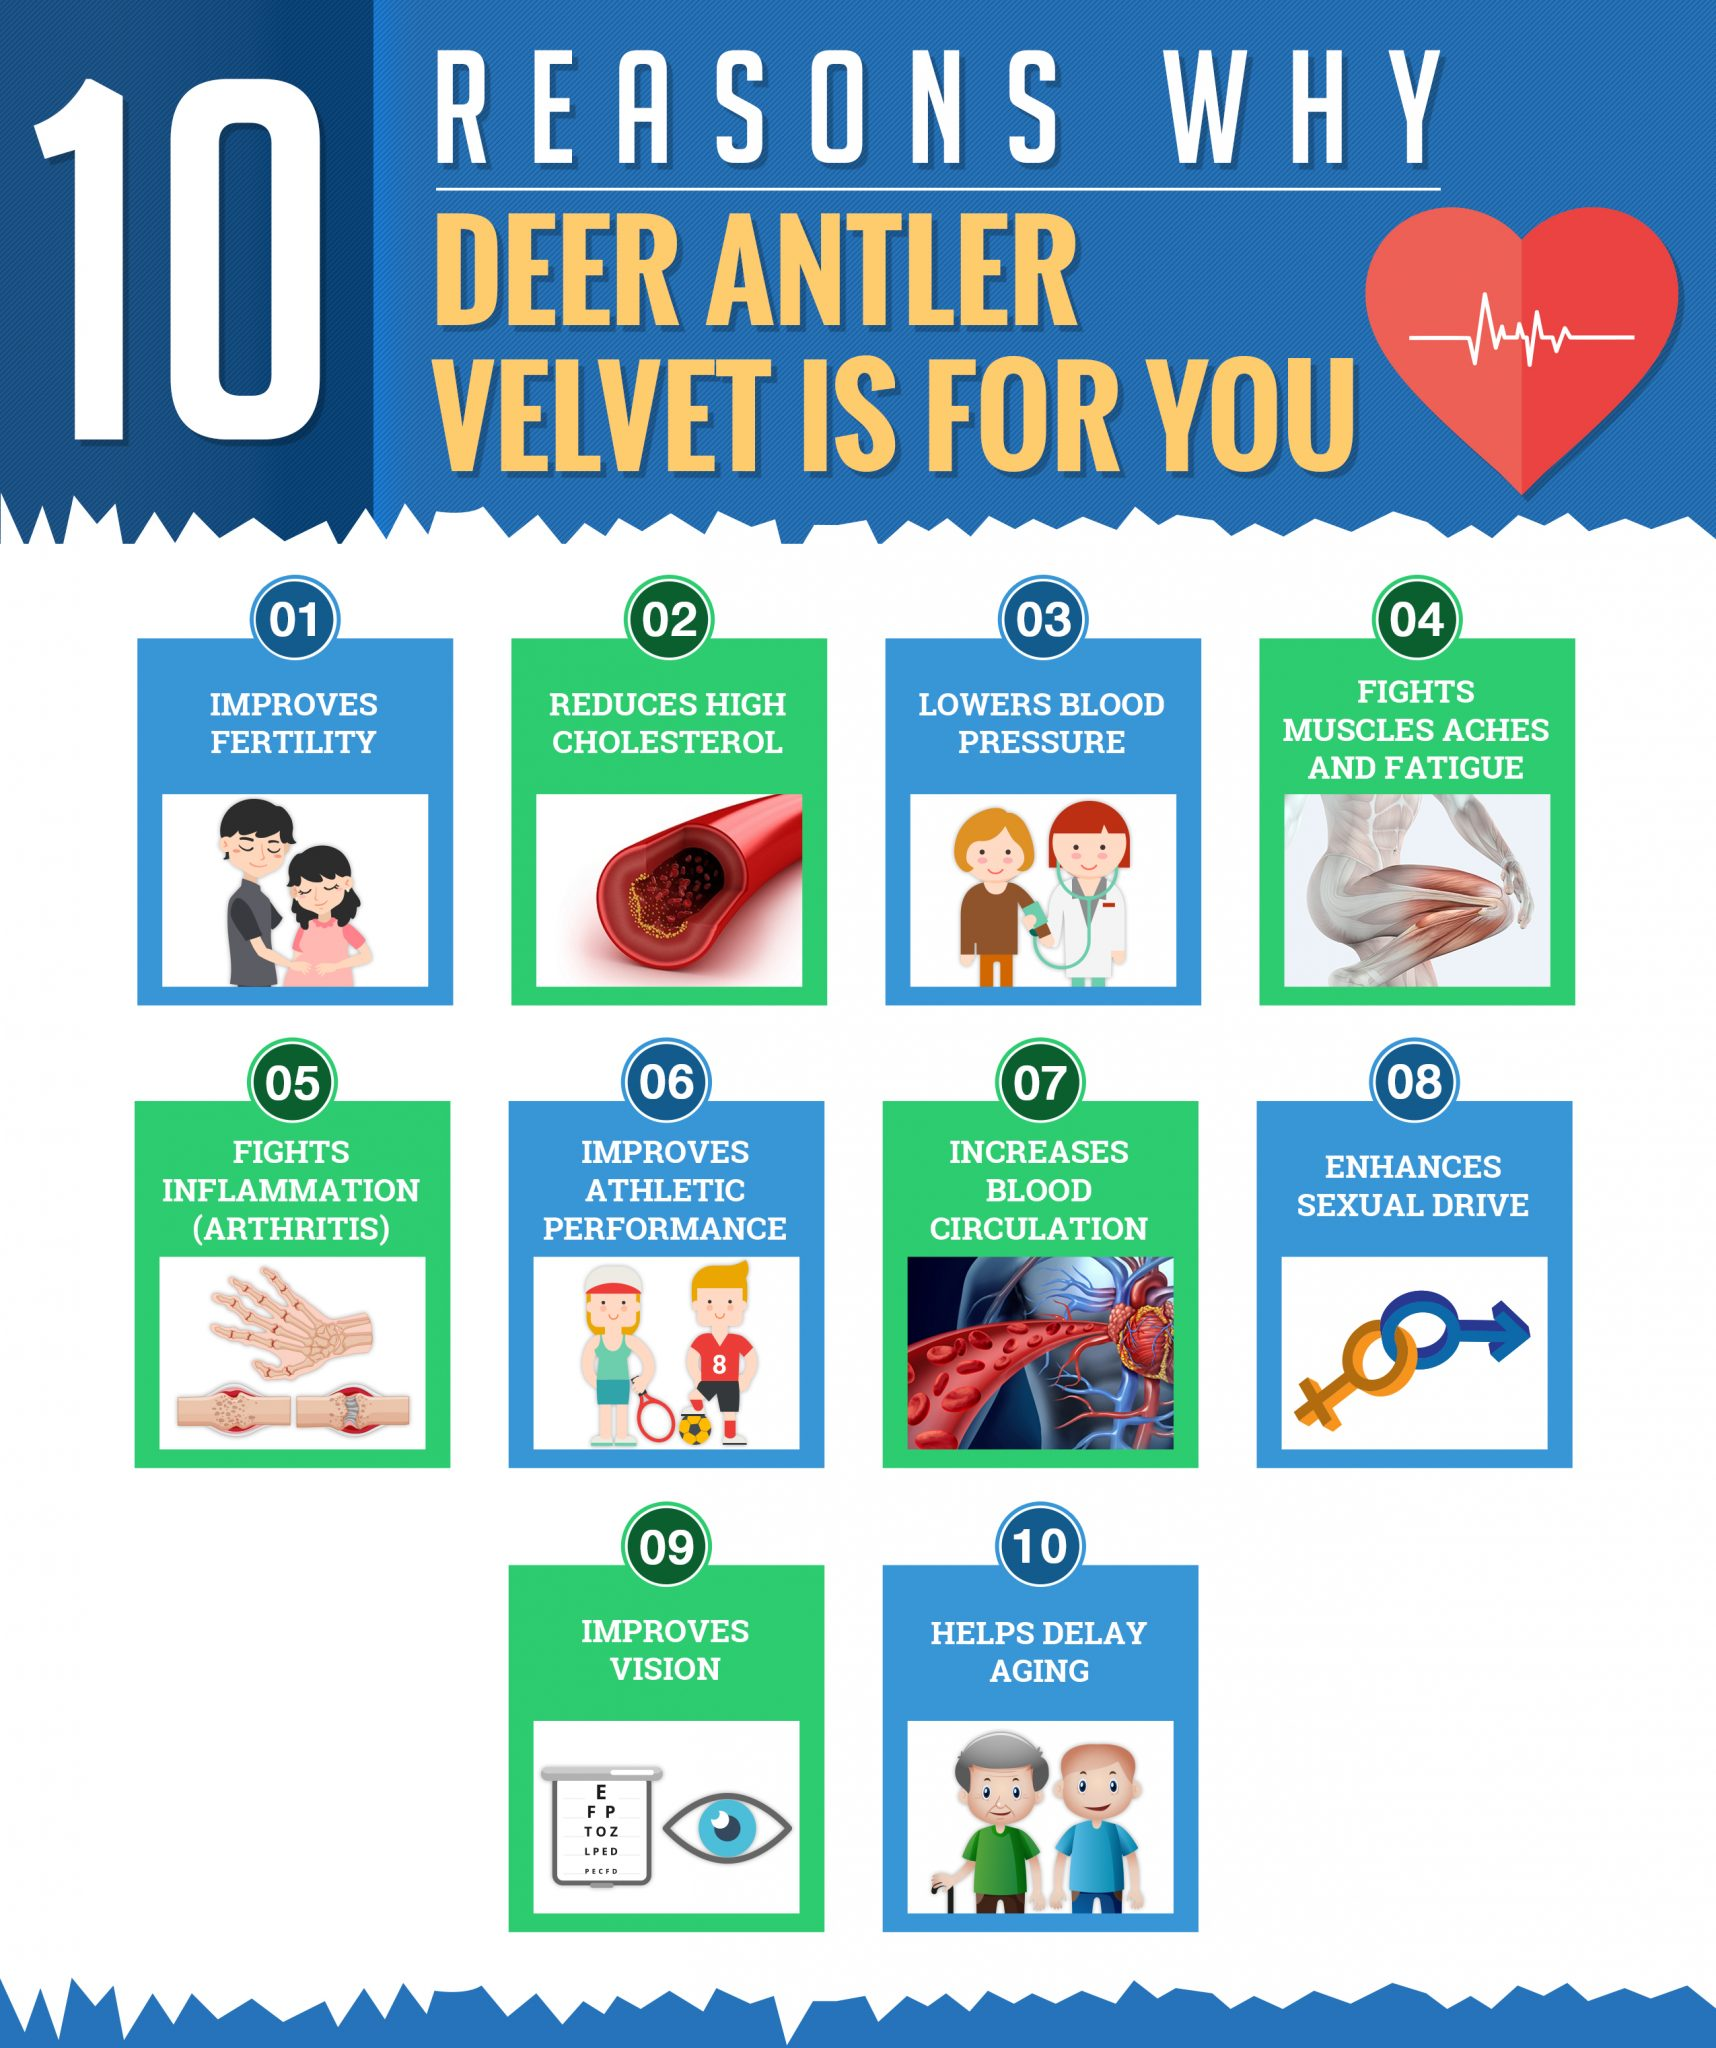 deer antler velvet health benefits